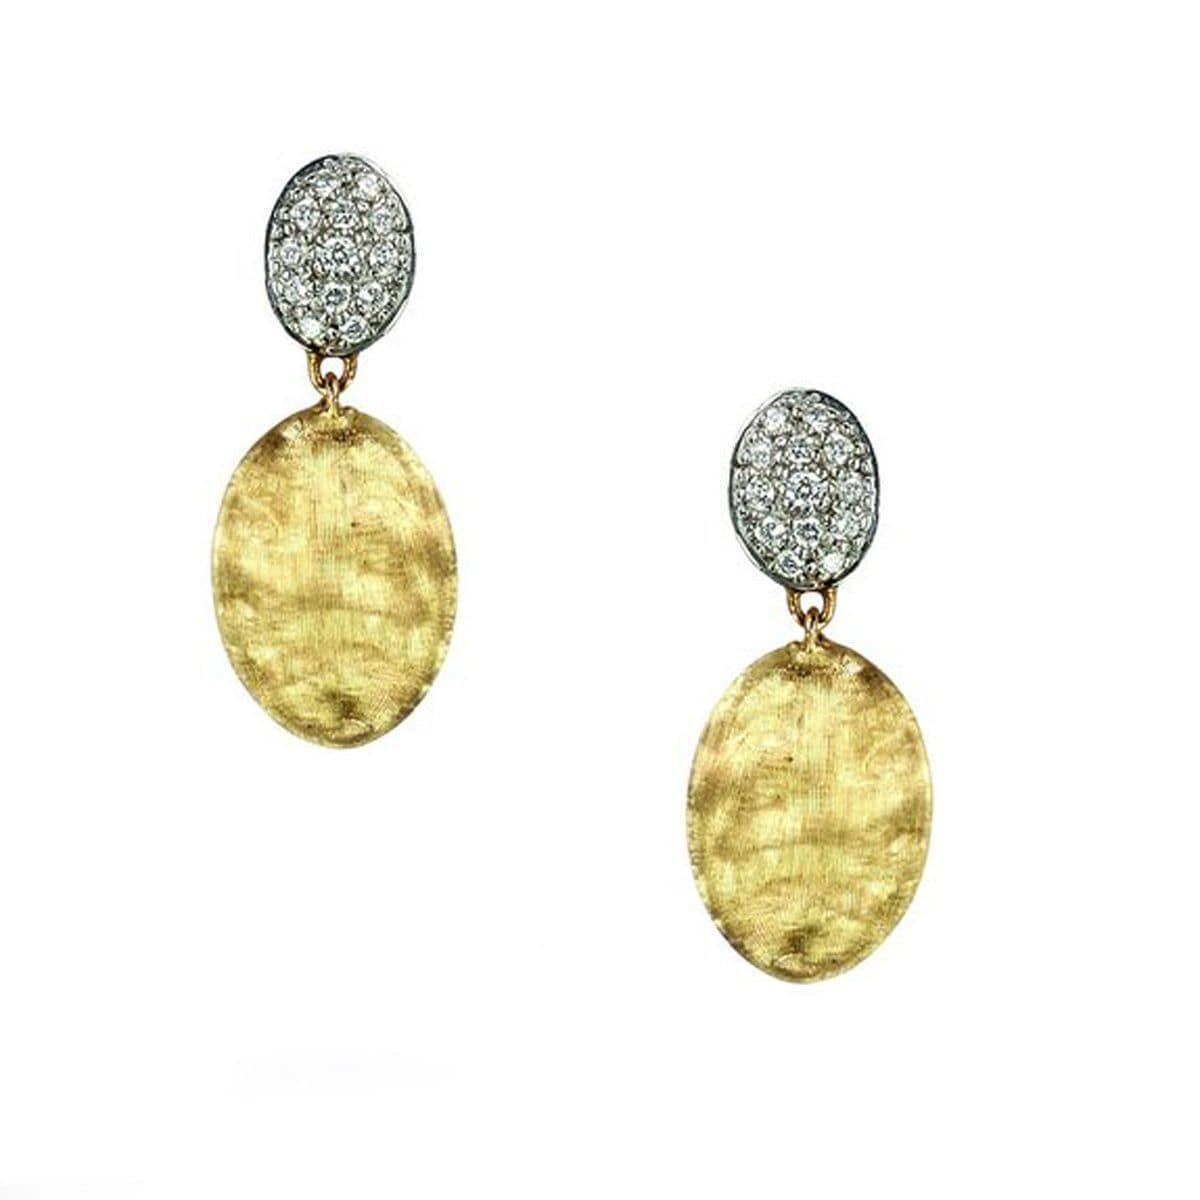 Siviglia Diamond Pave Drop Earrings - OB1289 B YW-Marco Bicego-Renee Taylor Gallery